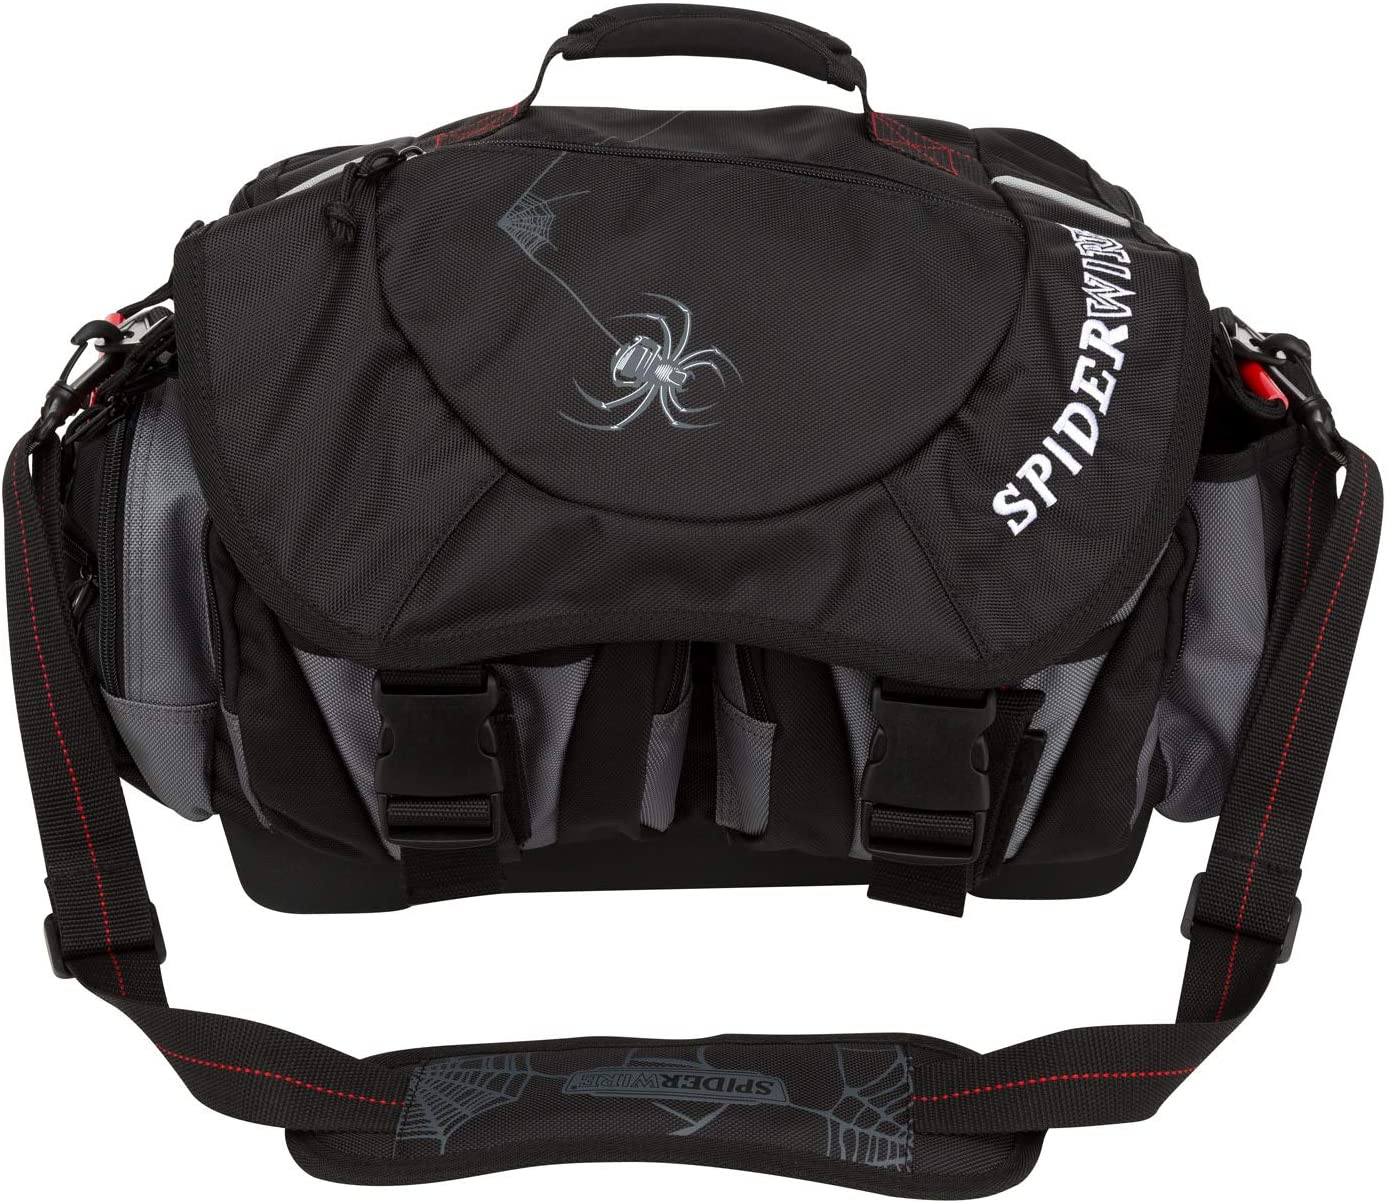 spiderwire-wolf-tackle-bag-review